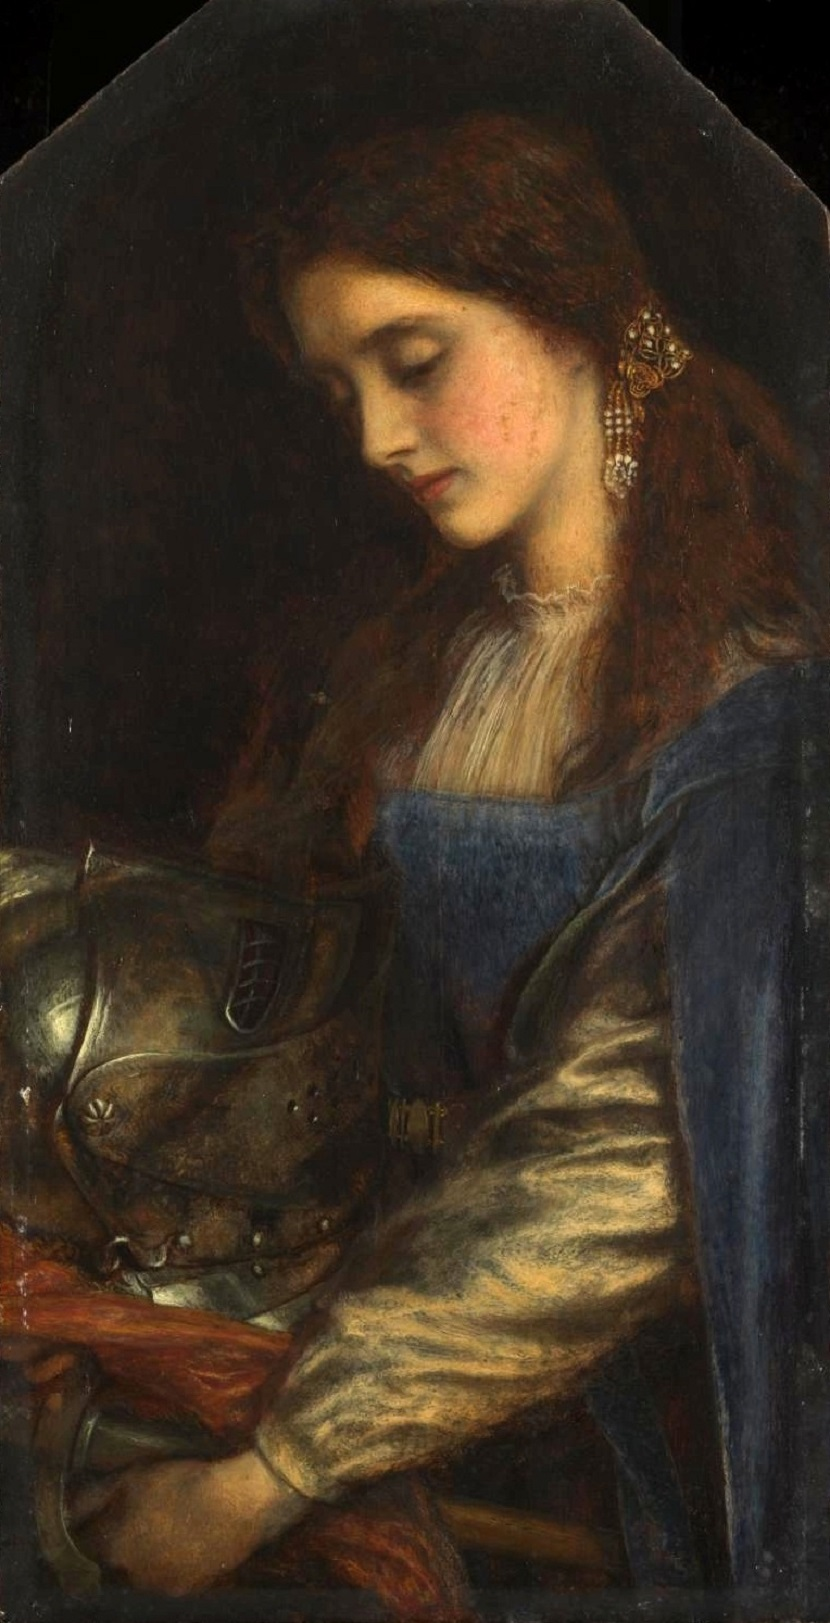 1867 Элейн с доспехом Ланцелота (Elaine with the Armour of Launcelot) Лондон, Музей Тейт.